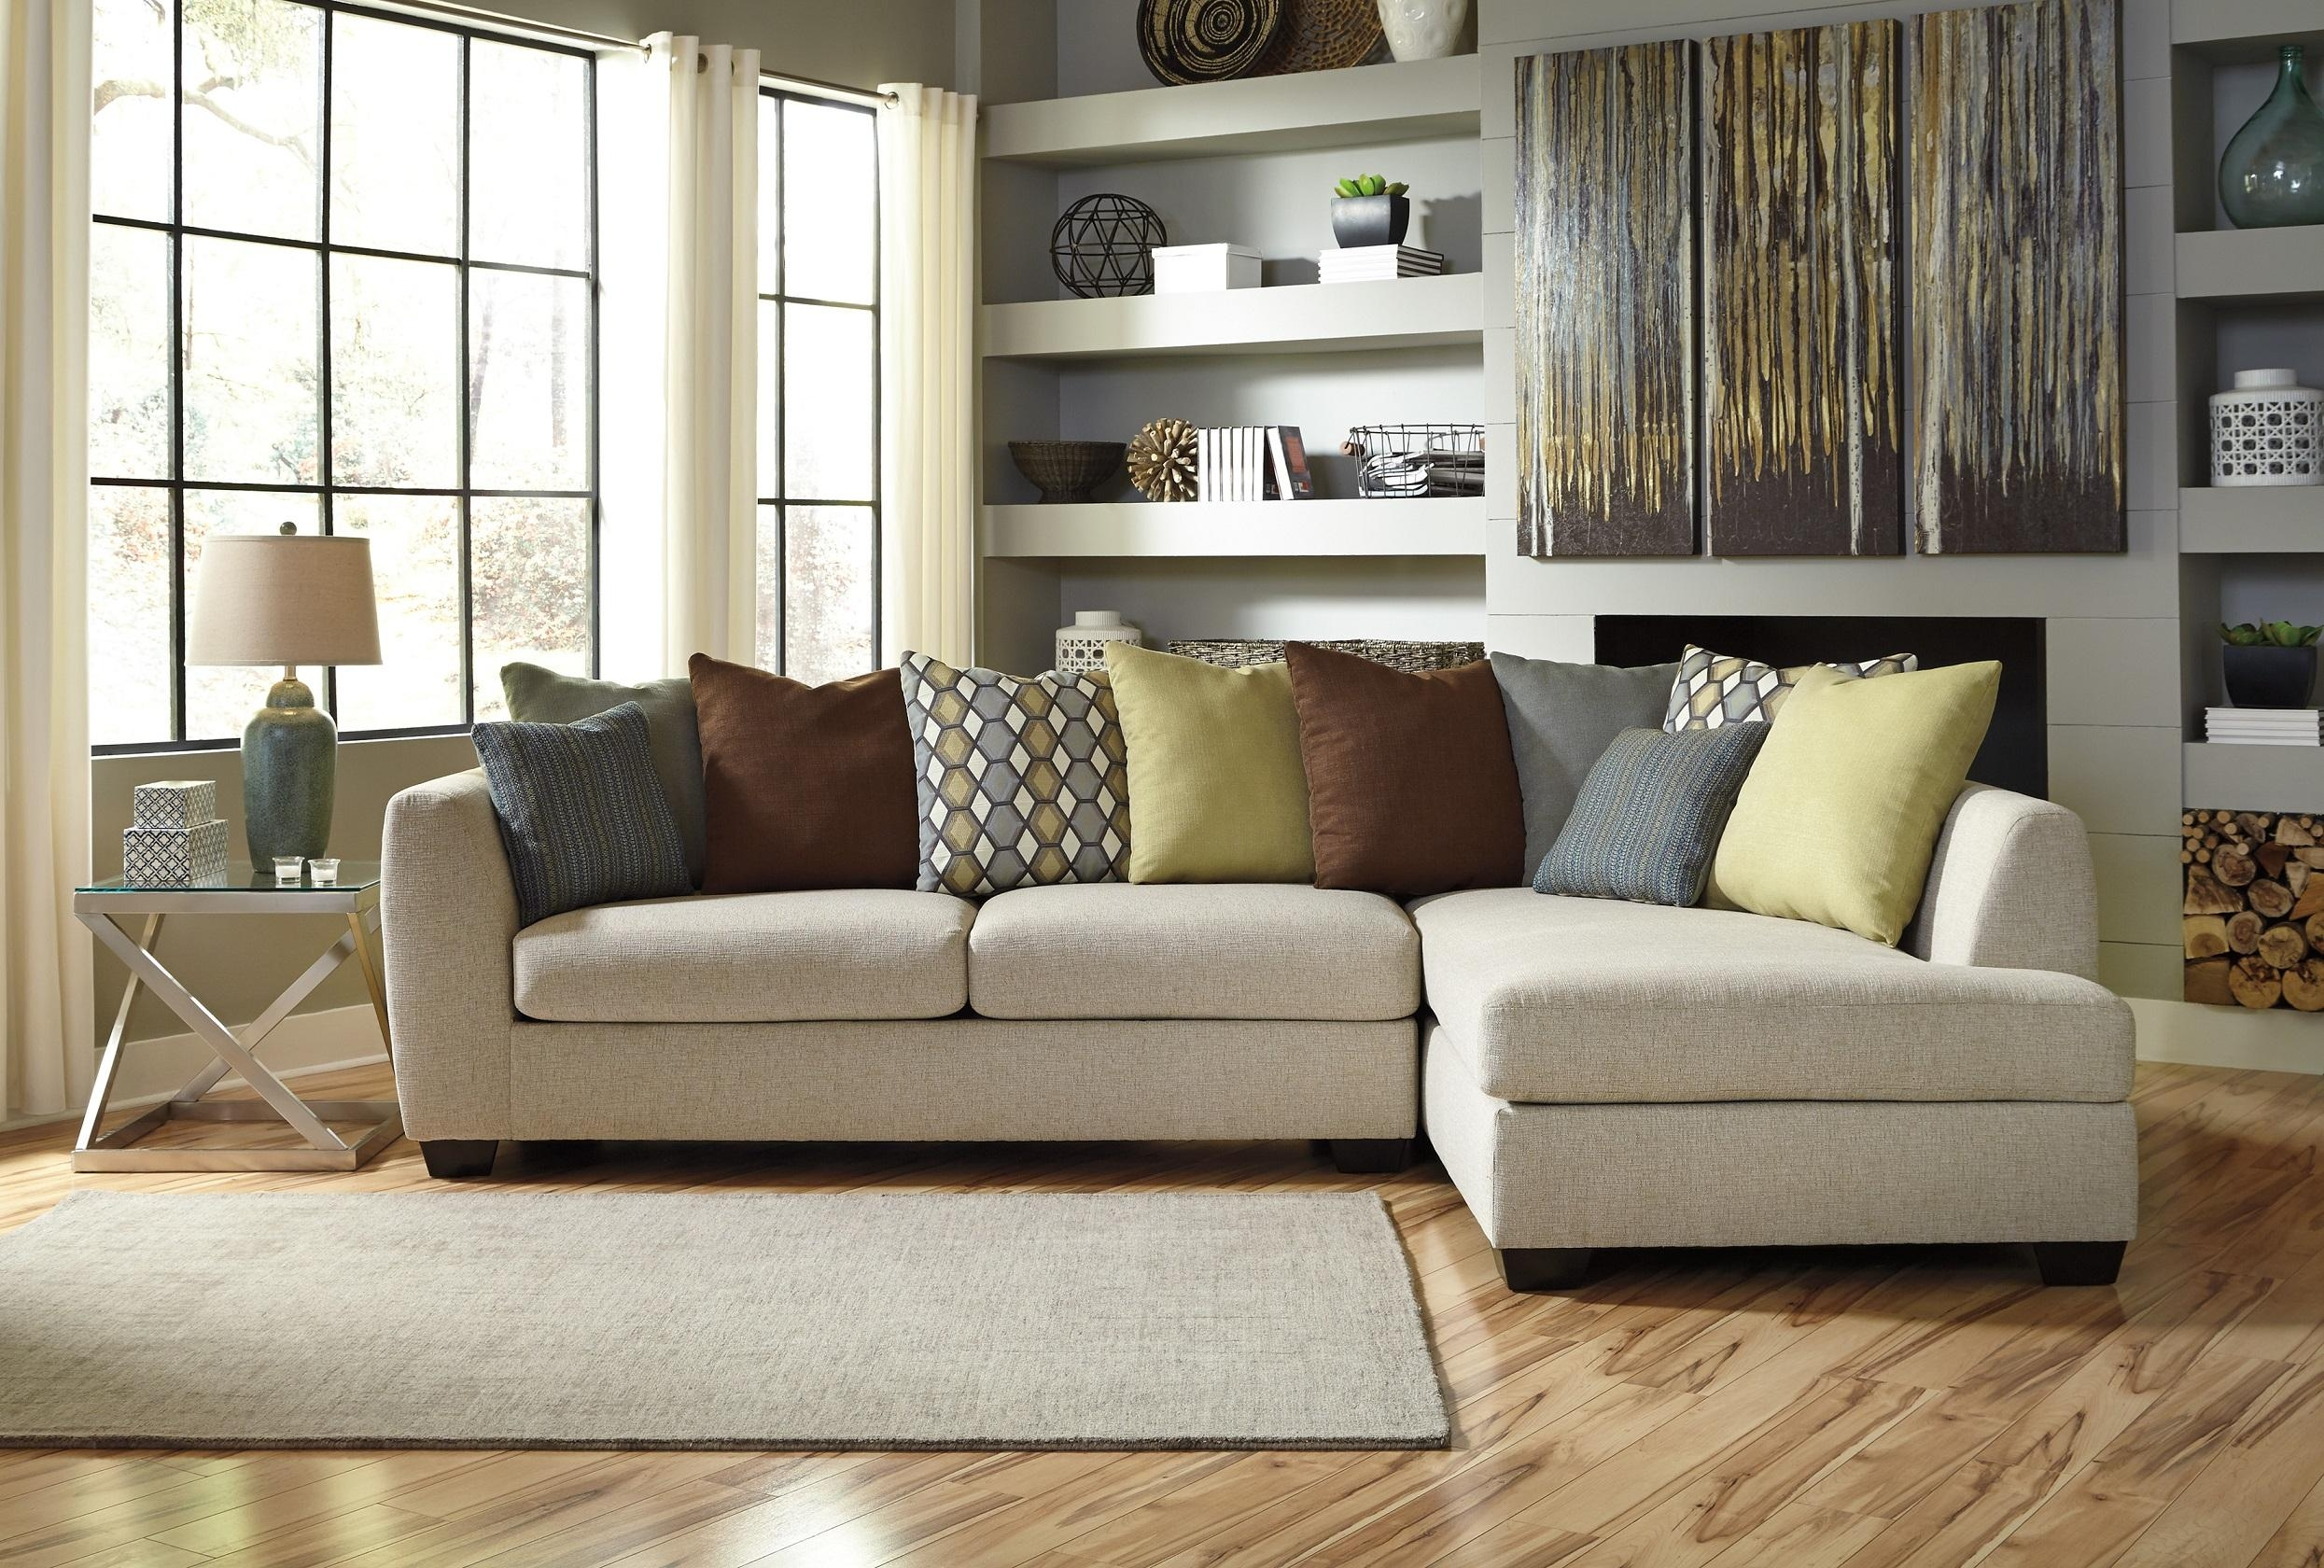 Sofas Center : Singular Ashley Furniture Sectional Sofas Photo Within Sectional Sofas Ashley Furniture (Image 19 of 20)